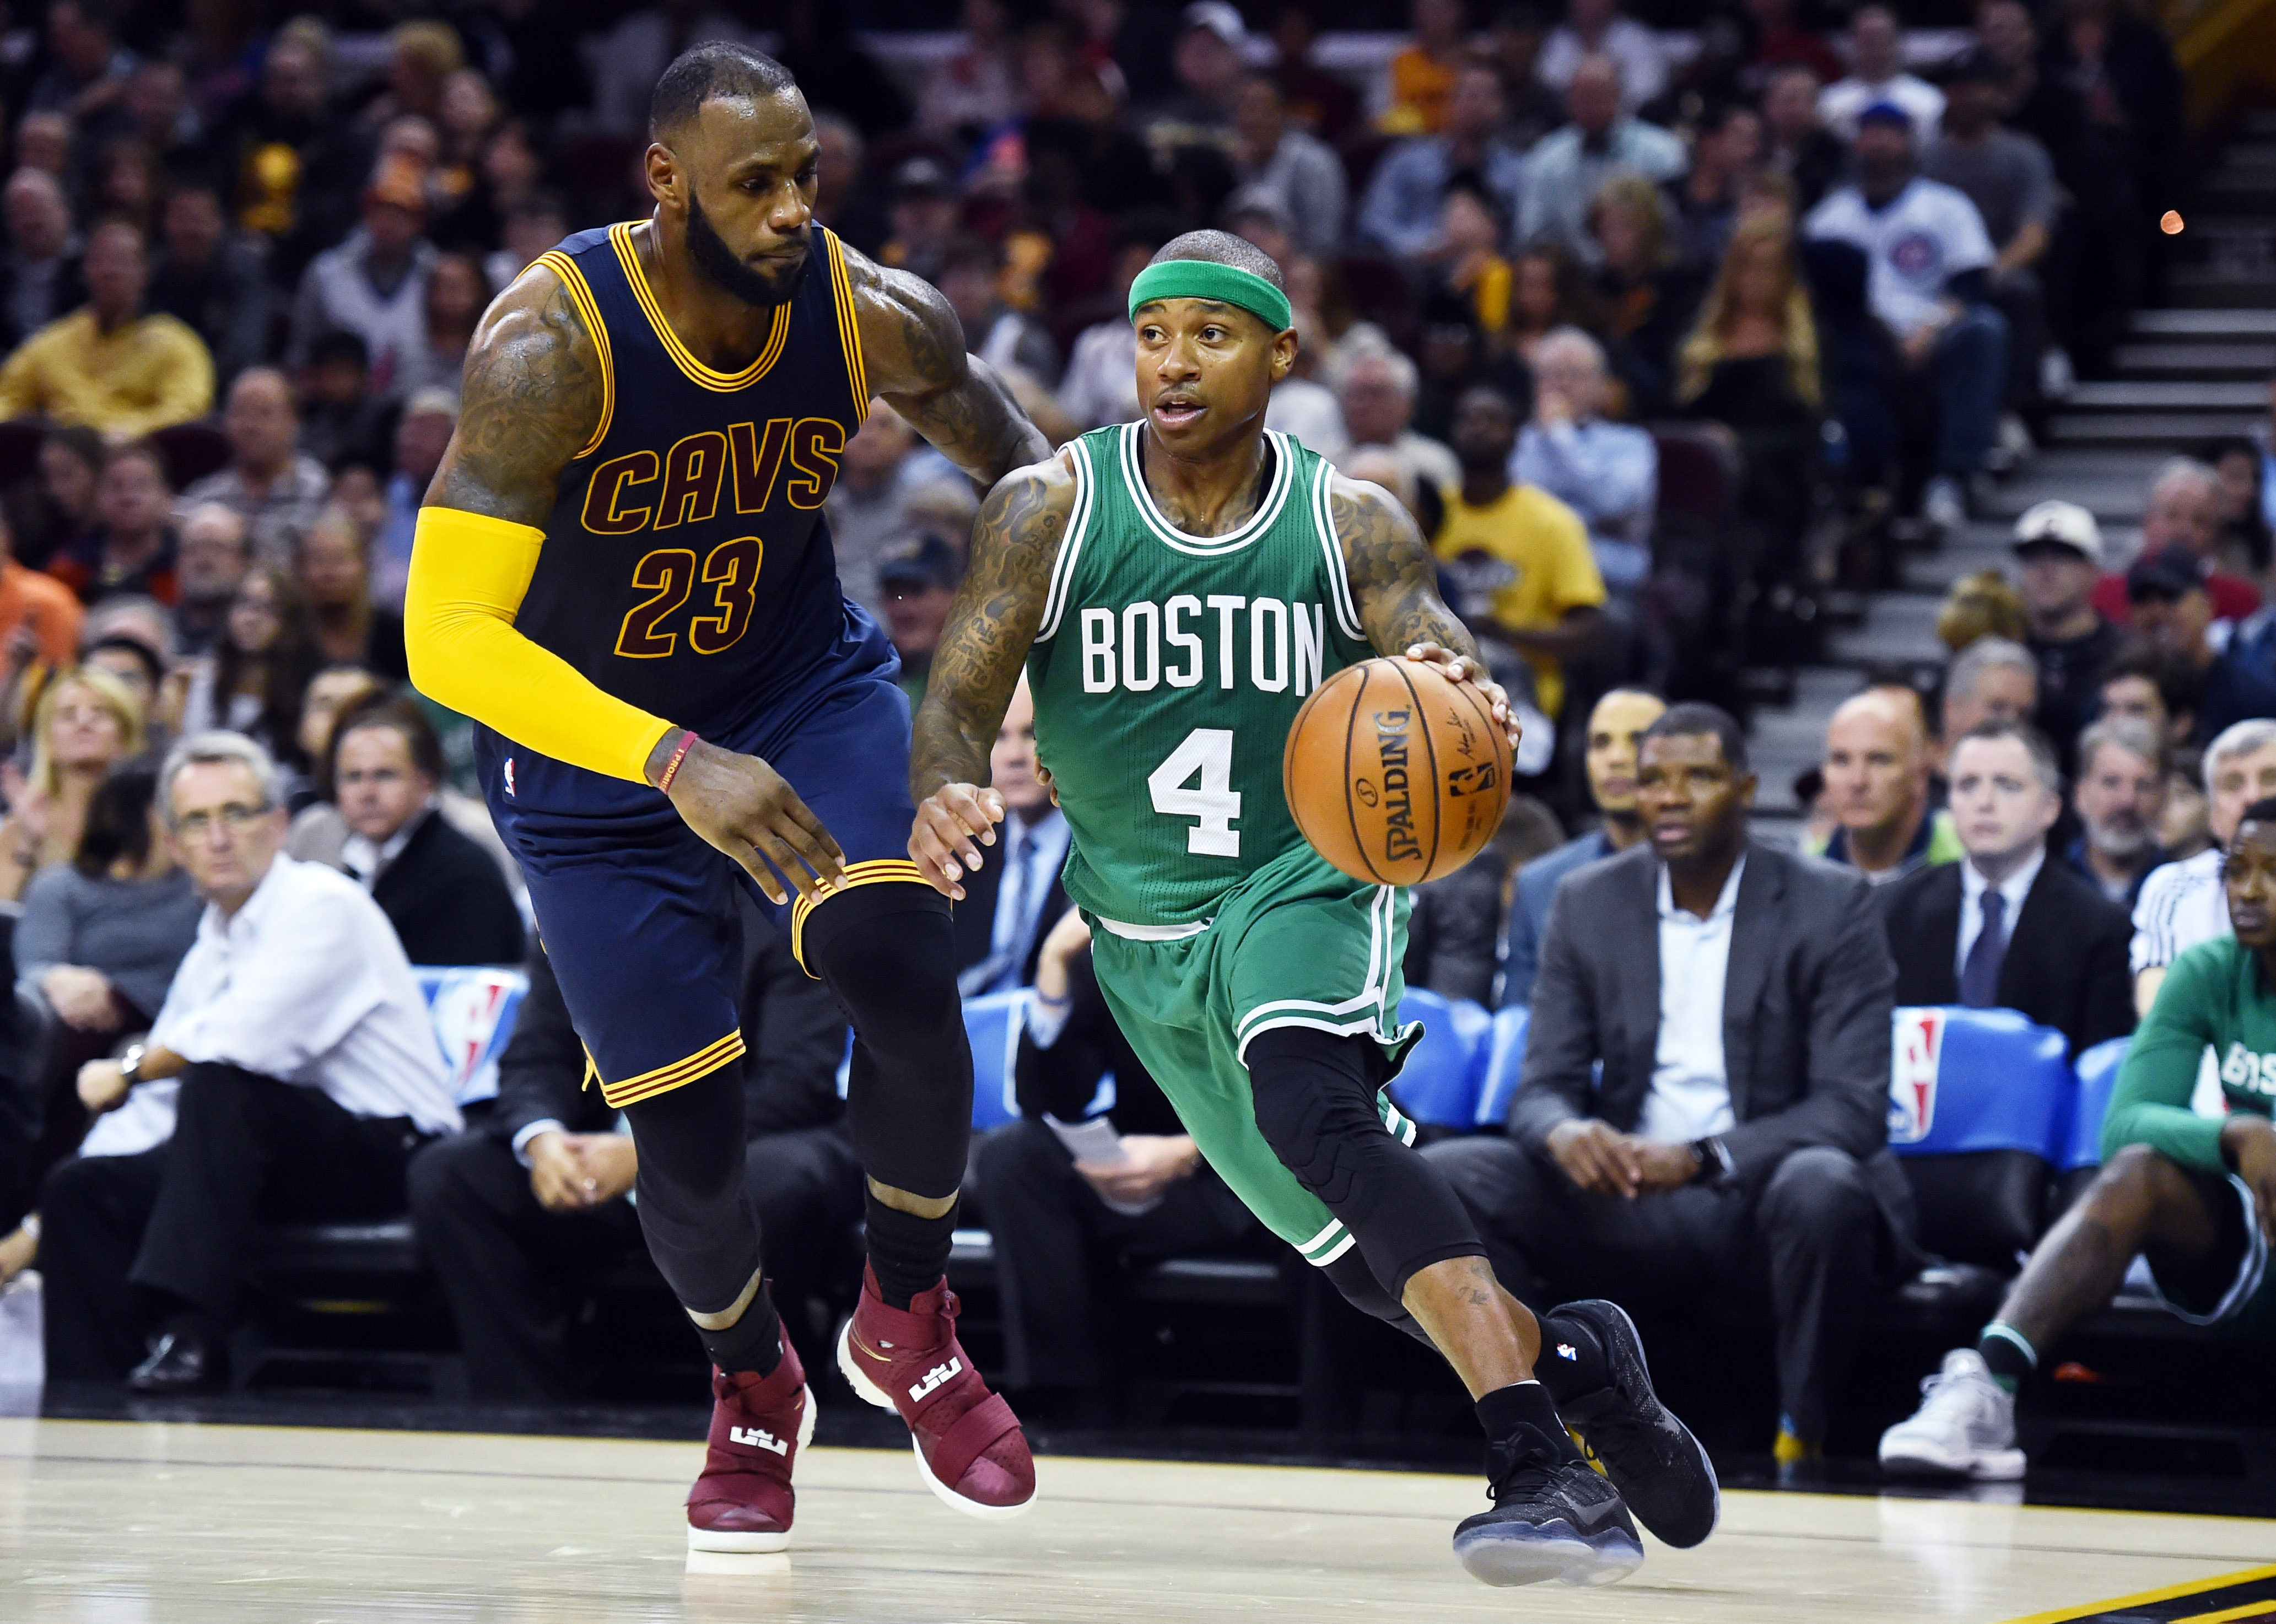 9651893-nba-boston-celtics-at-cleveland-cavaliers